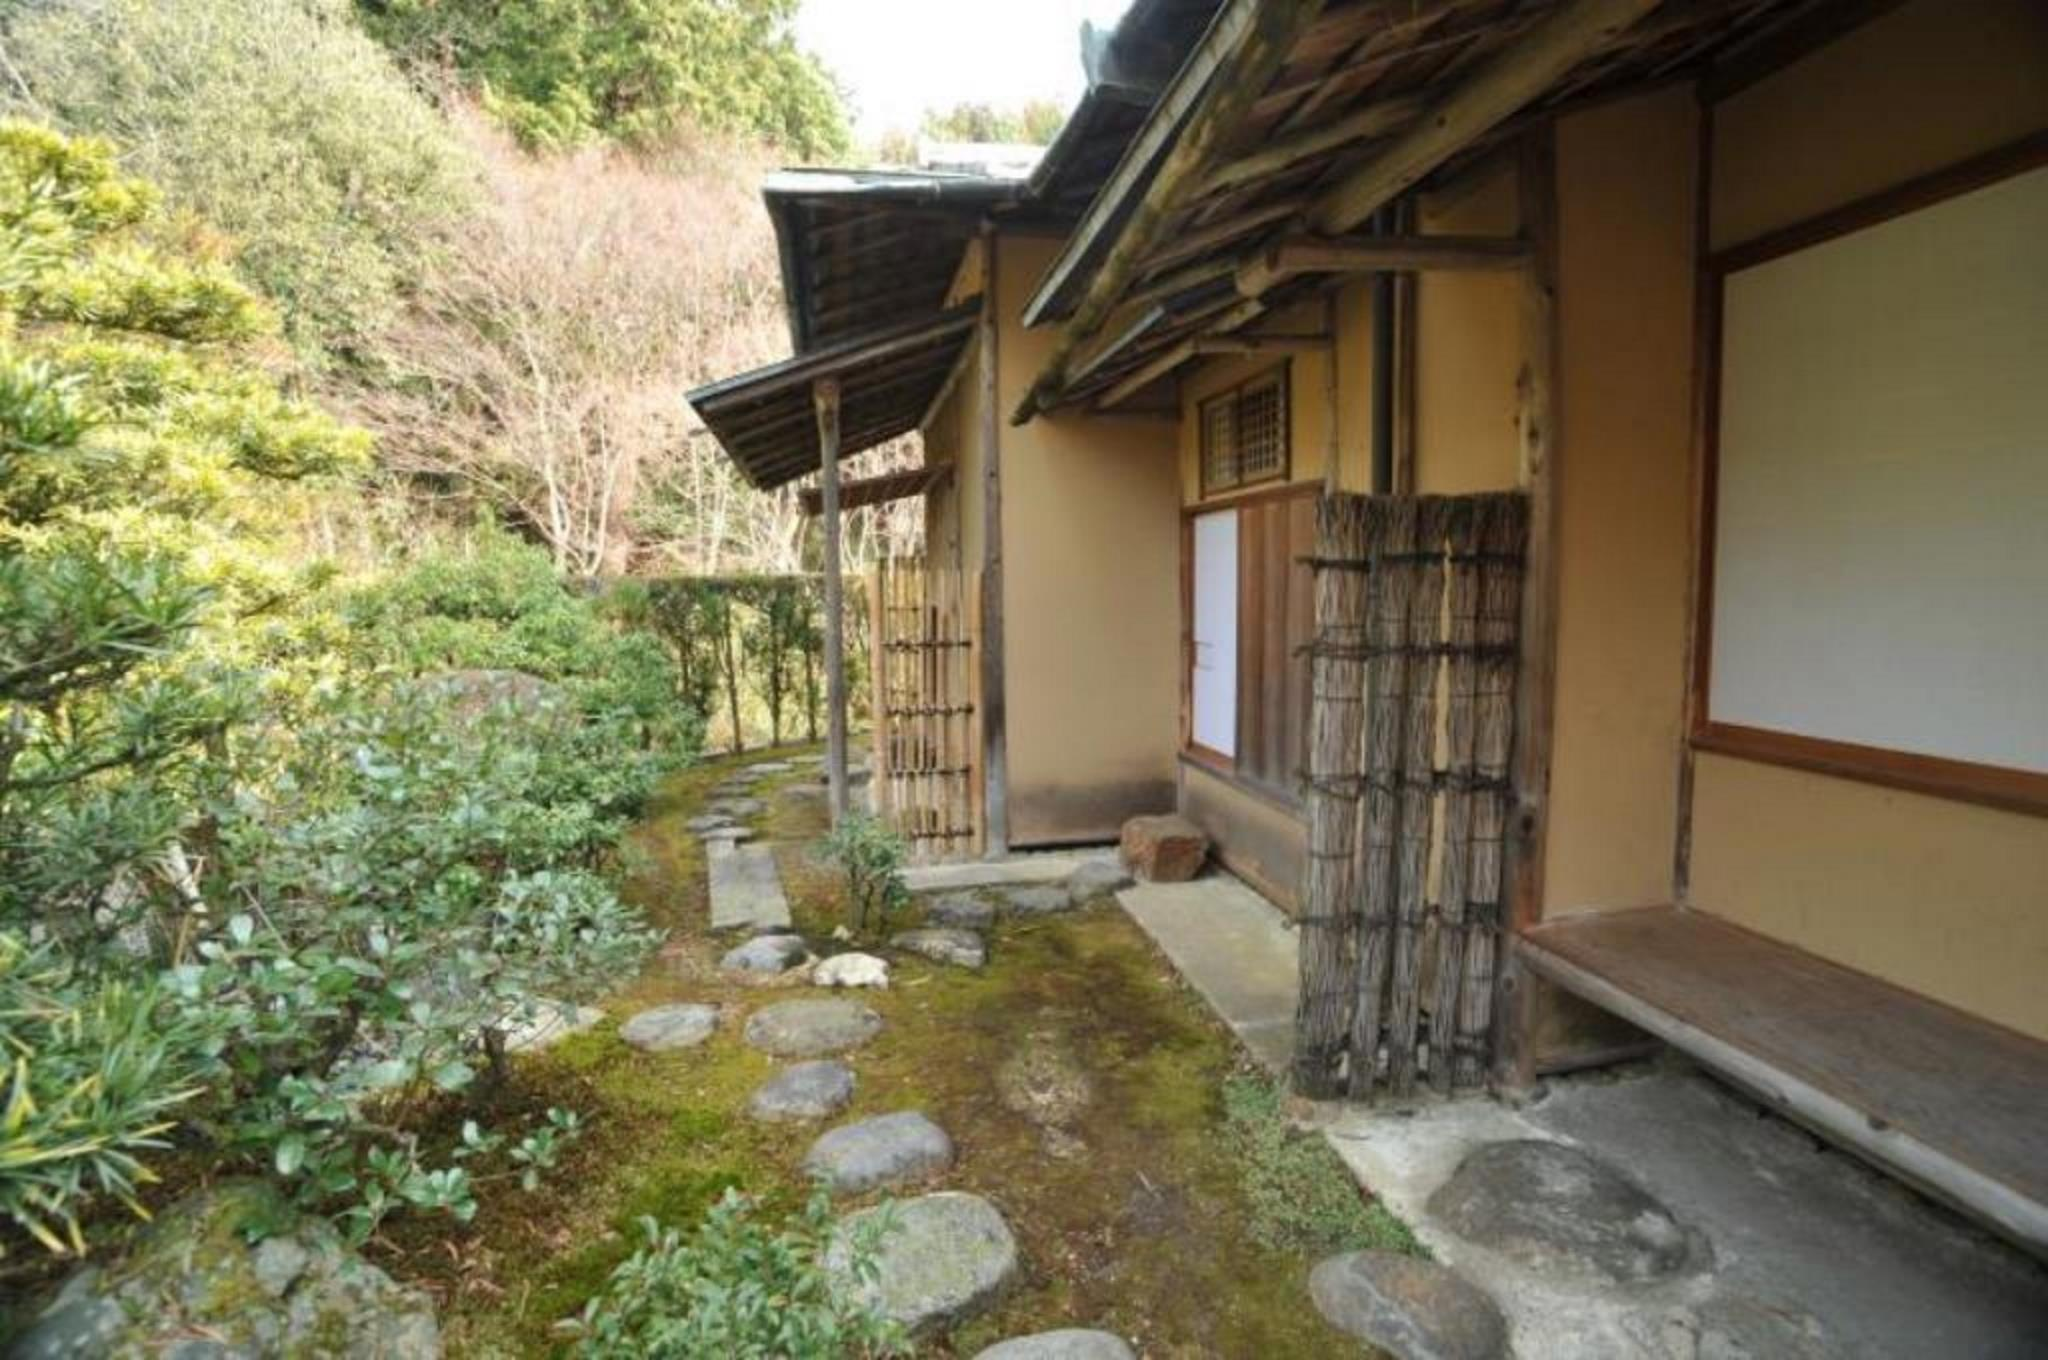 園景日式中型房 - 可住5人/需共用浴室 (Annex Garden View Medium Japanese Style Room for 5 People with Shared Bathroom)